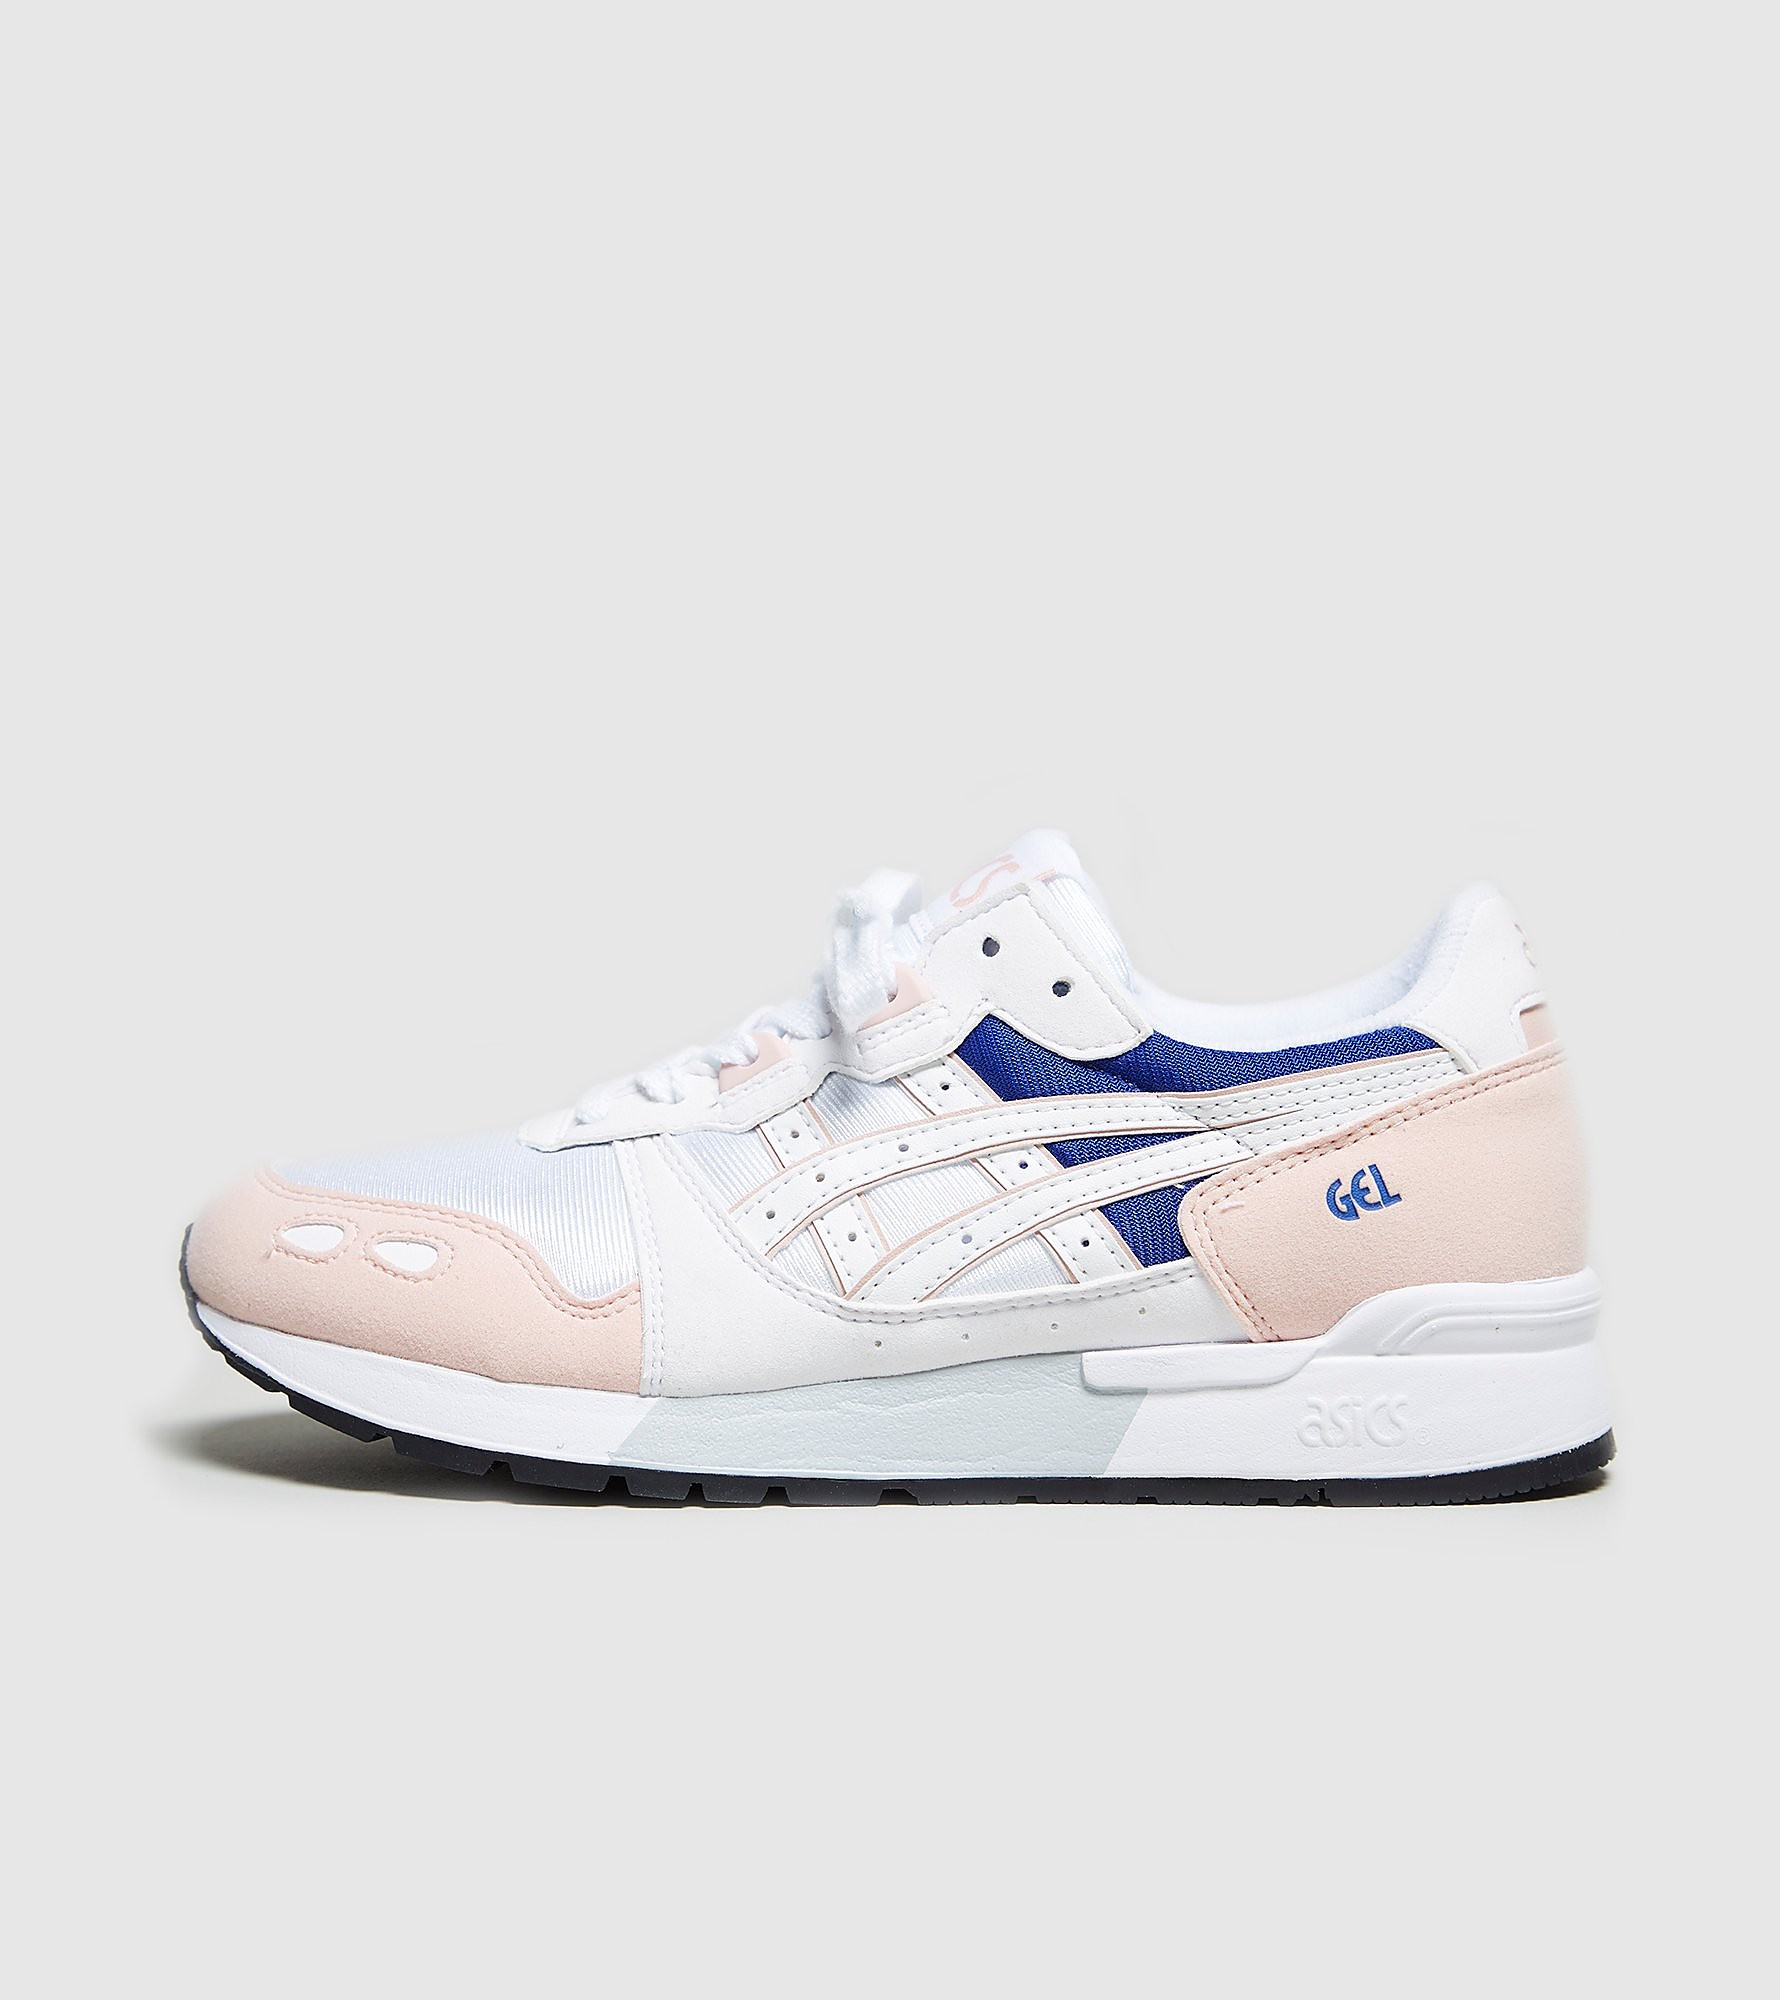 ASICS TIGER Gel Lyte Women's